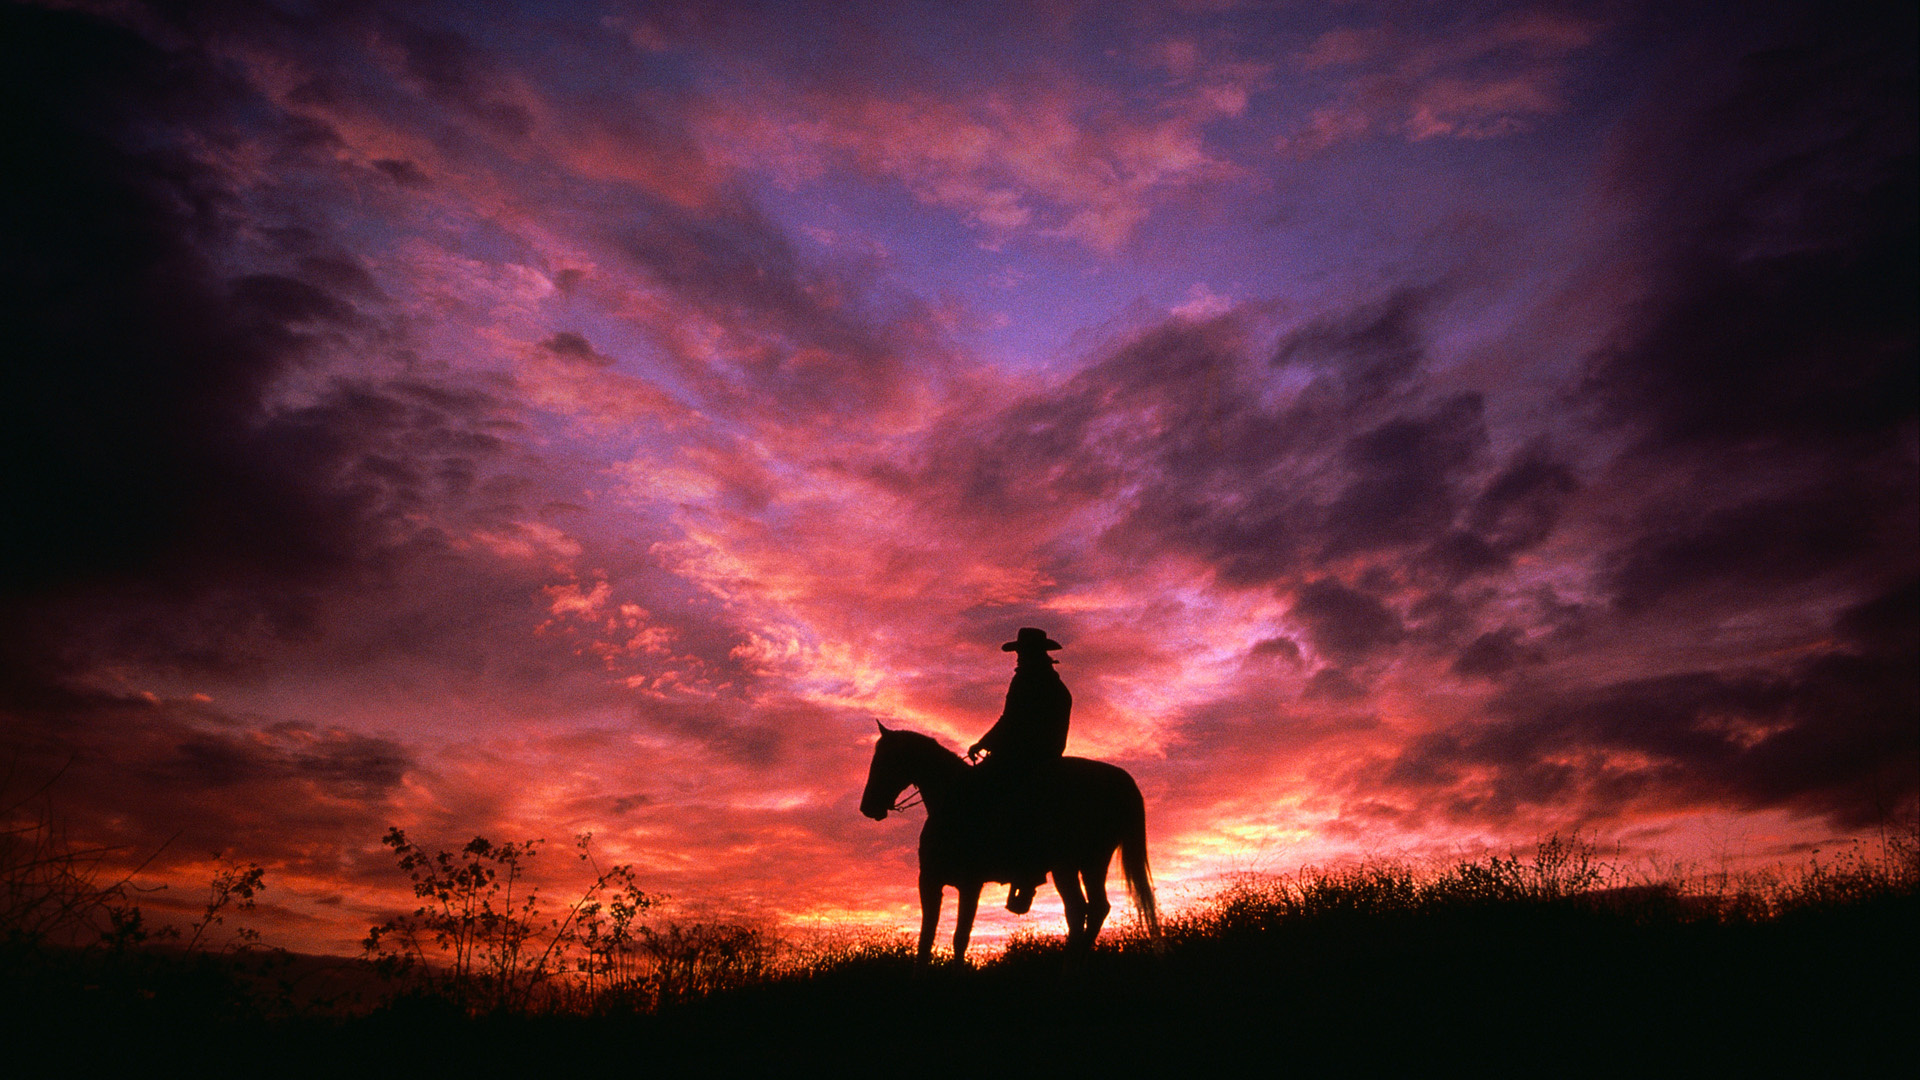 Wallpaper sky, cowboy, clouds, horse, silhouette, sunset, cowboy on ...